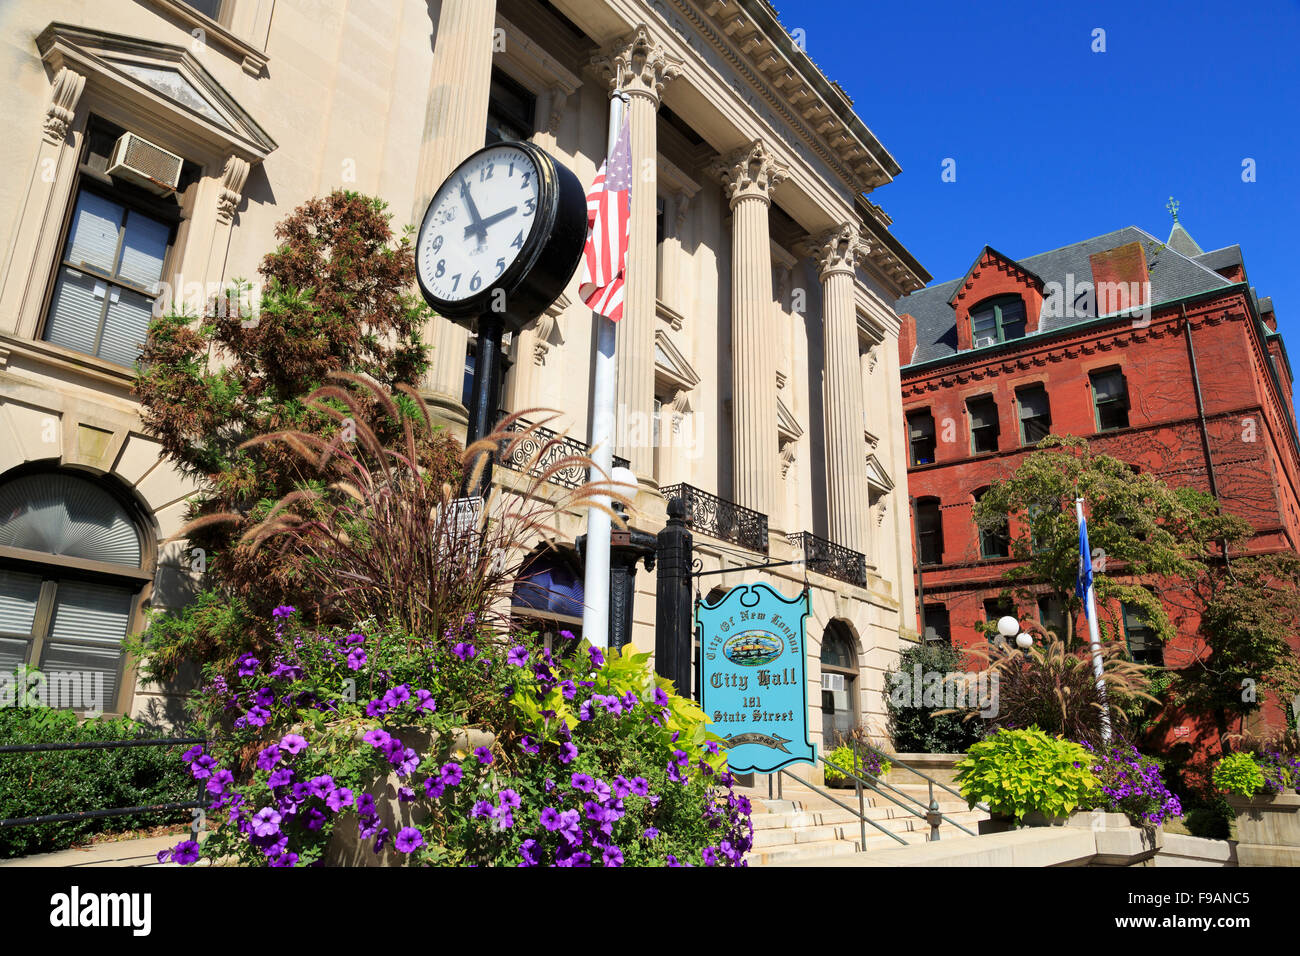 City Hall, New London, Connecticut, USA - Stock Image